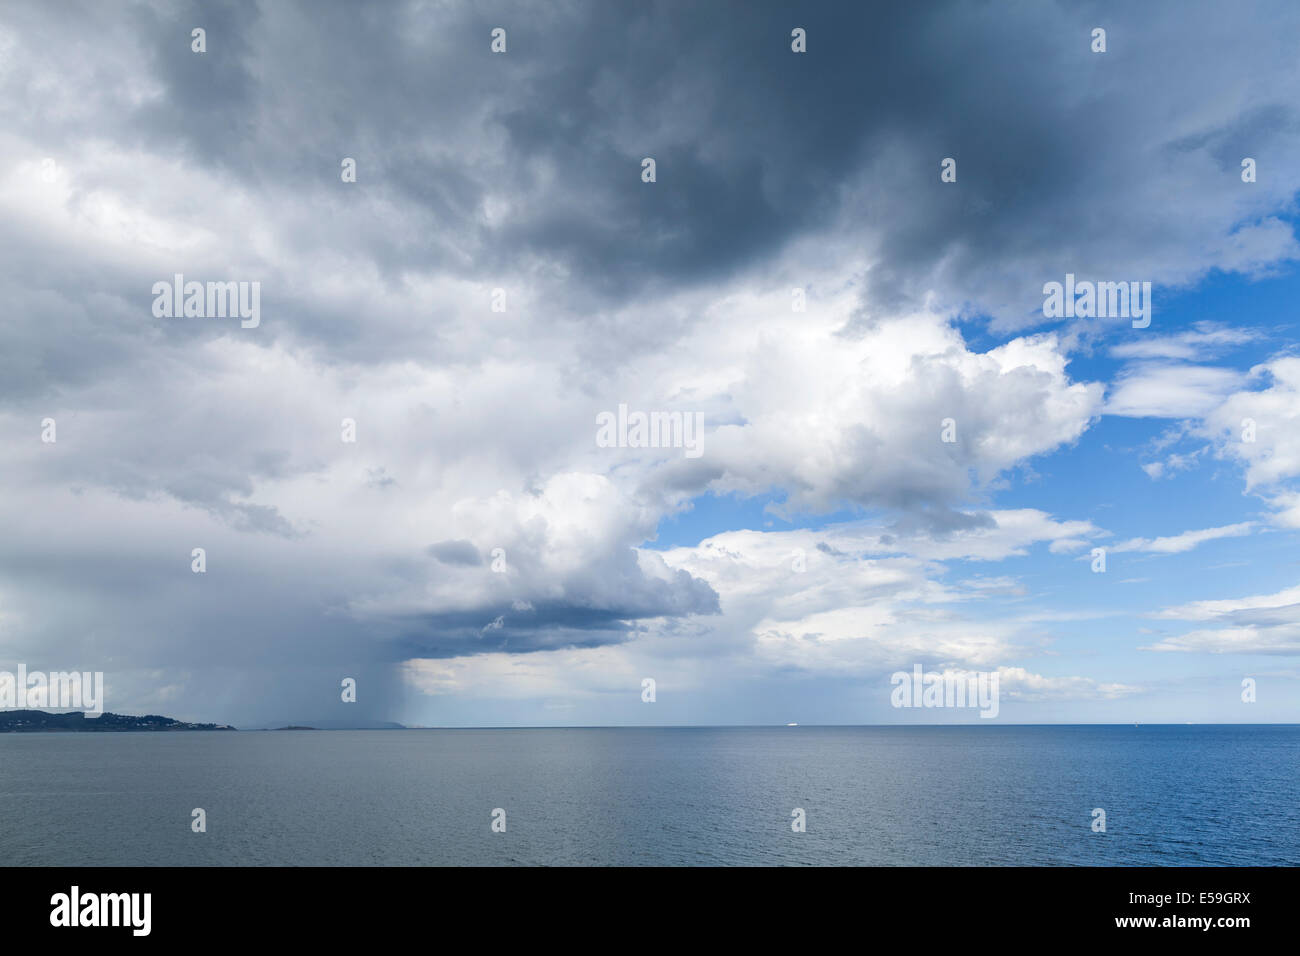 Rain clouds over the east coast of Ireland seen from Bray, County Wicklow, Ireland. Stock Photo